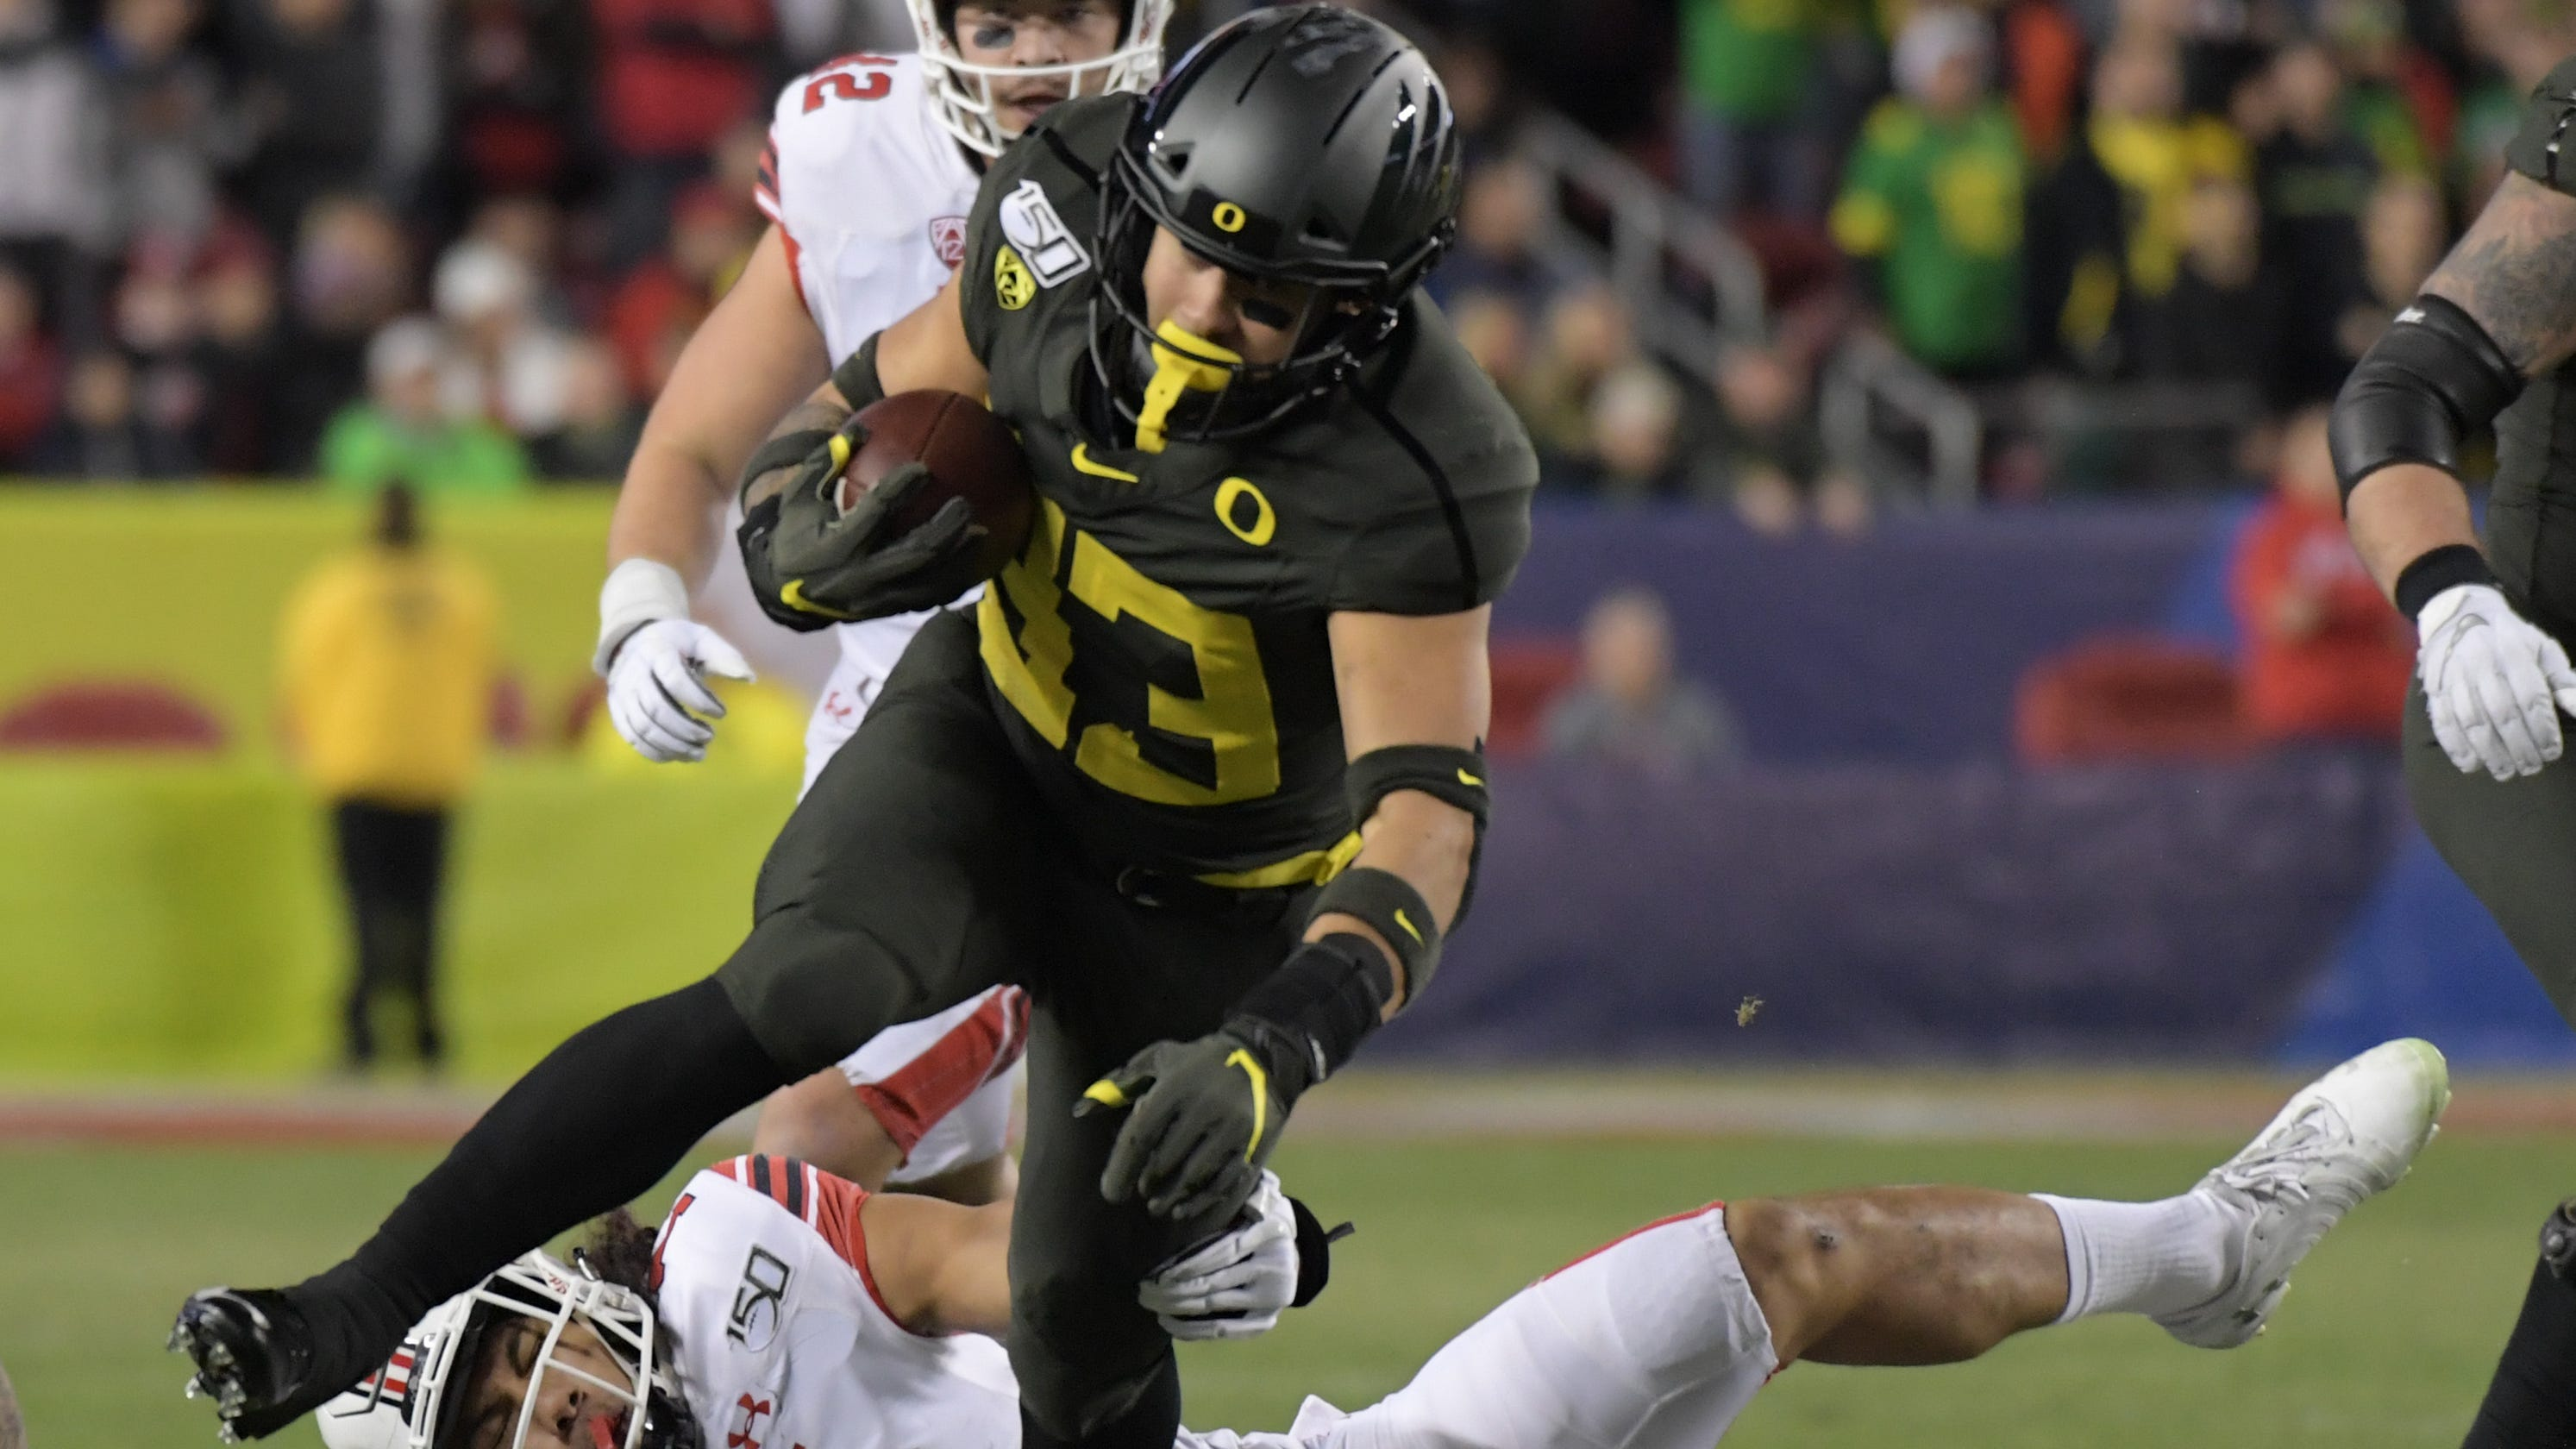 Pac-12 college football schedule with conference games starts Sept. 26